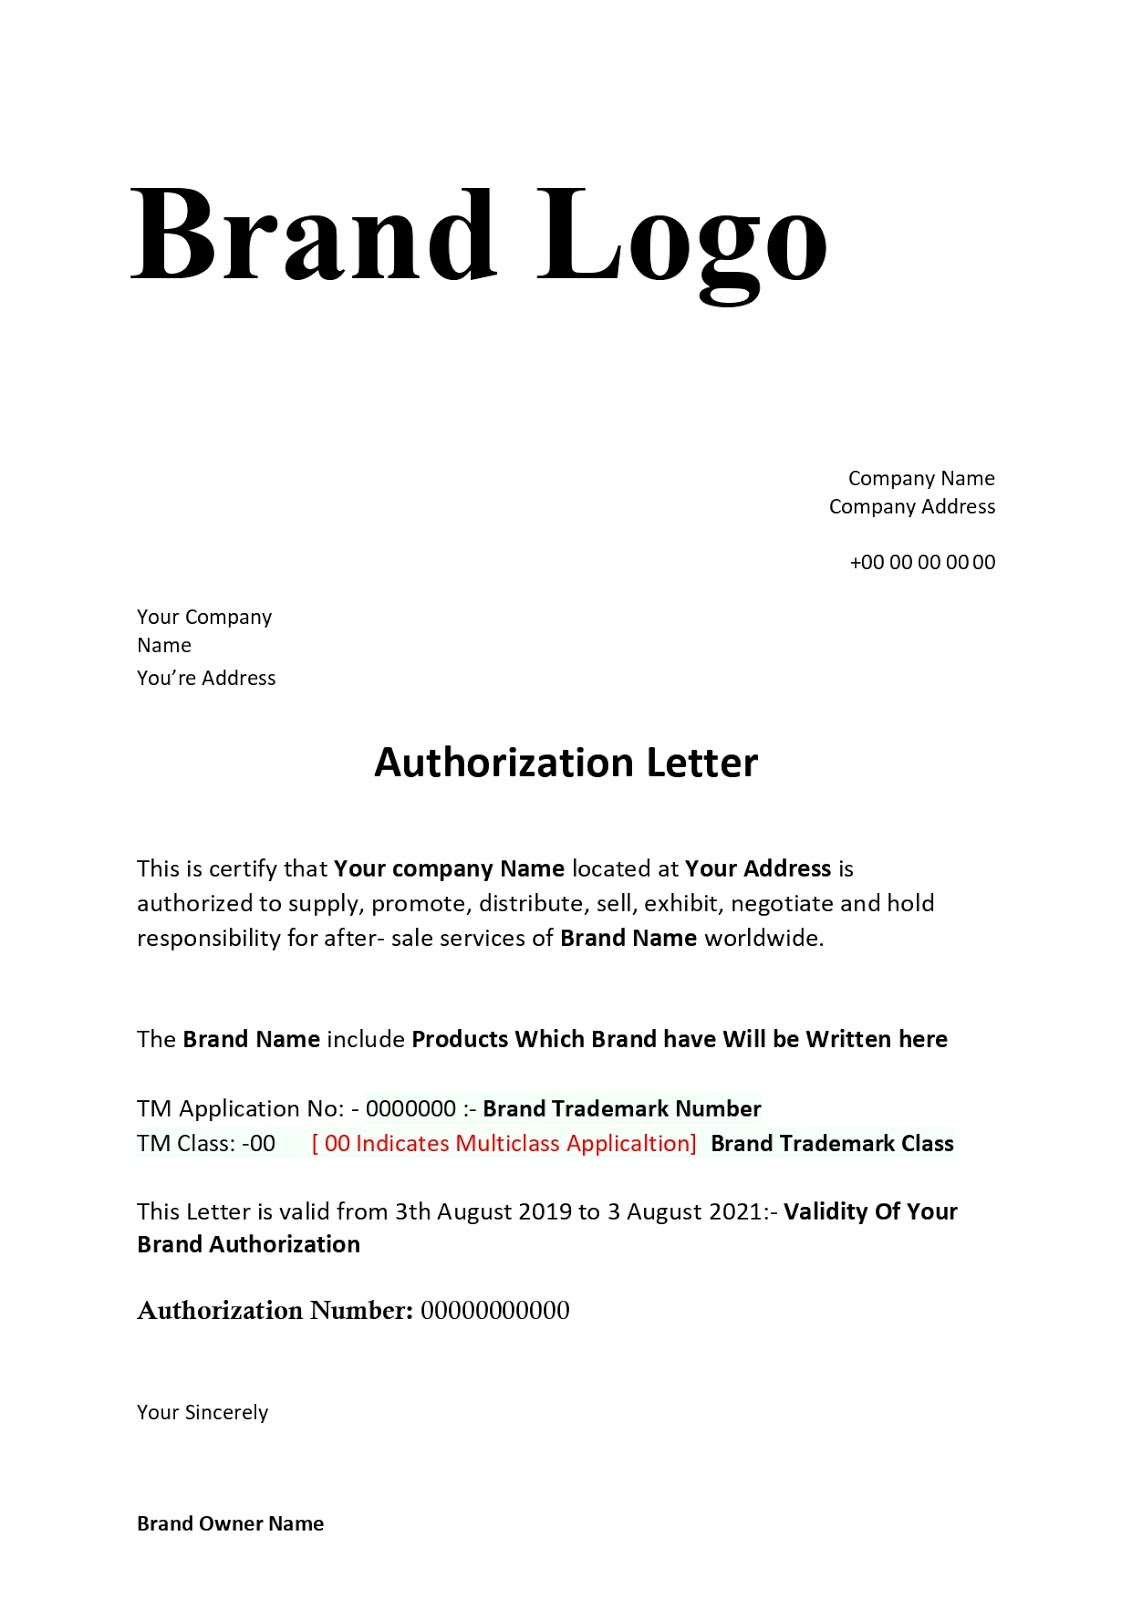 Brand Authorization Letter Format For Sellers